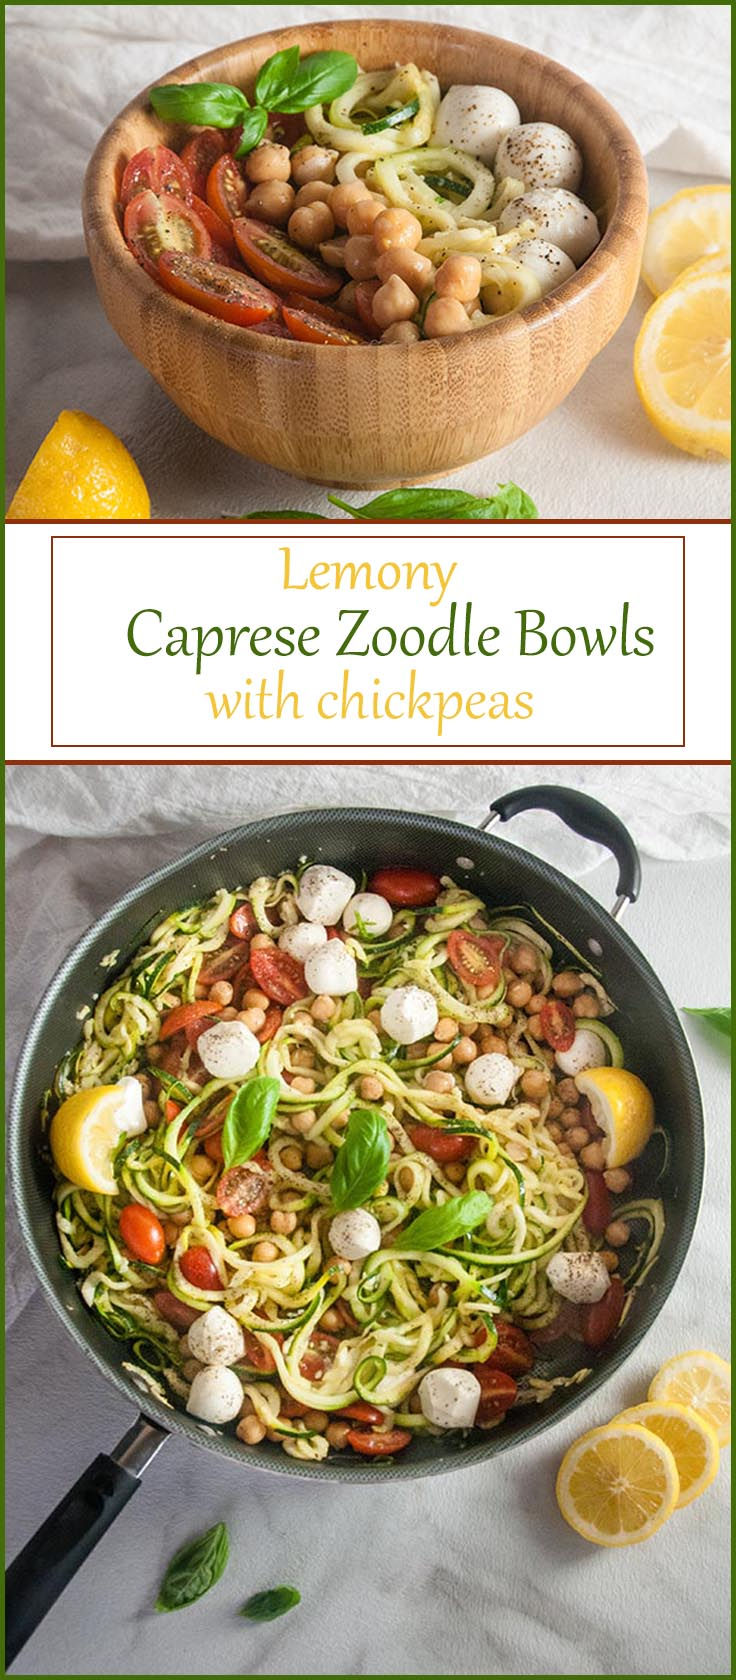 Lemony Caprese Zoodle Bowls with Chickpeas from www.SeasonedSprinkles.com